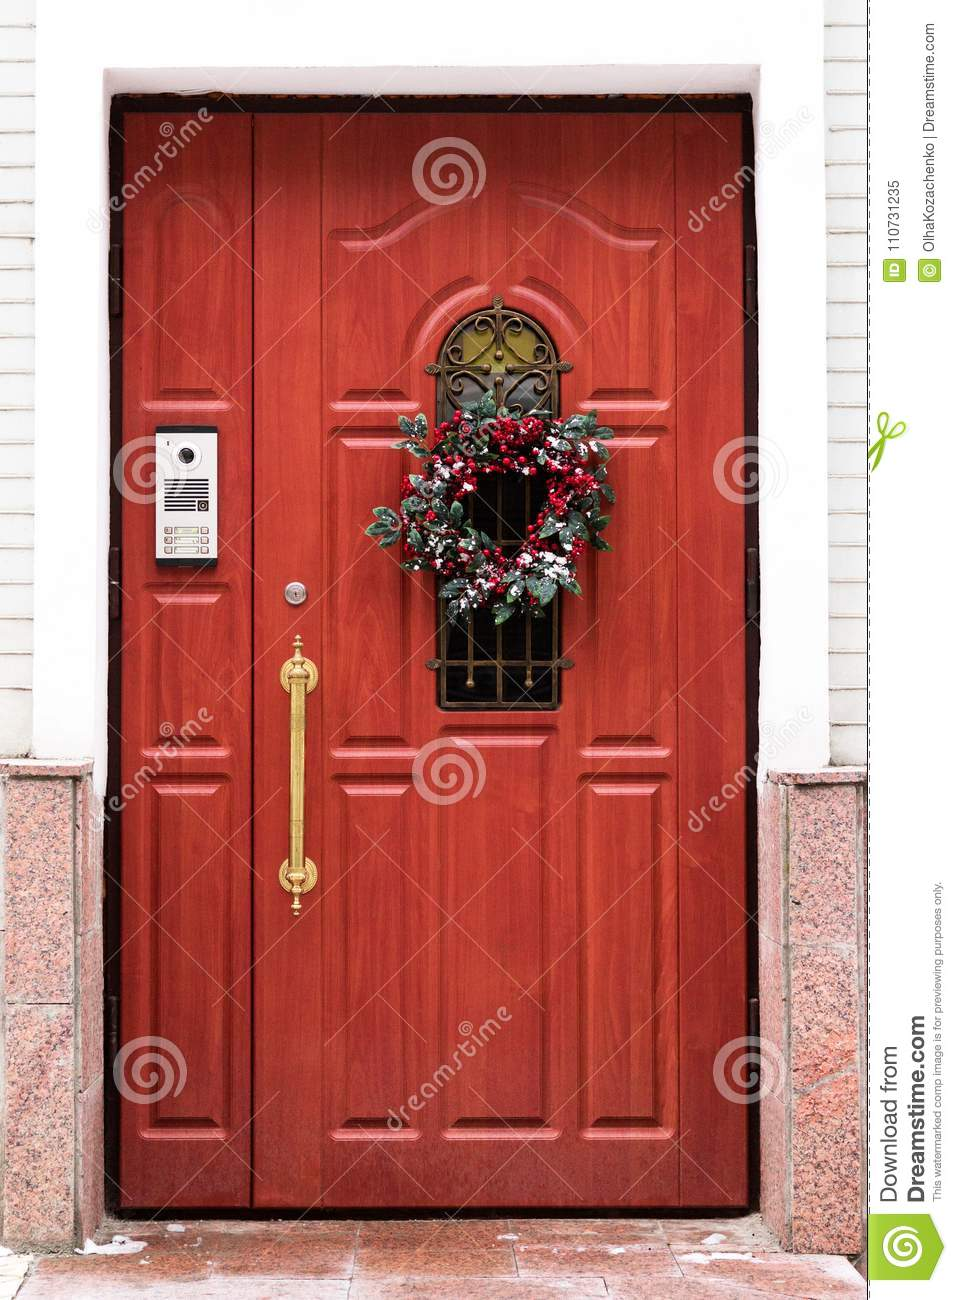 Door with a Christmas wreath